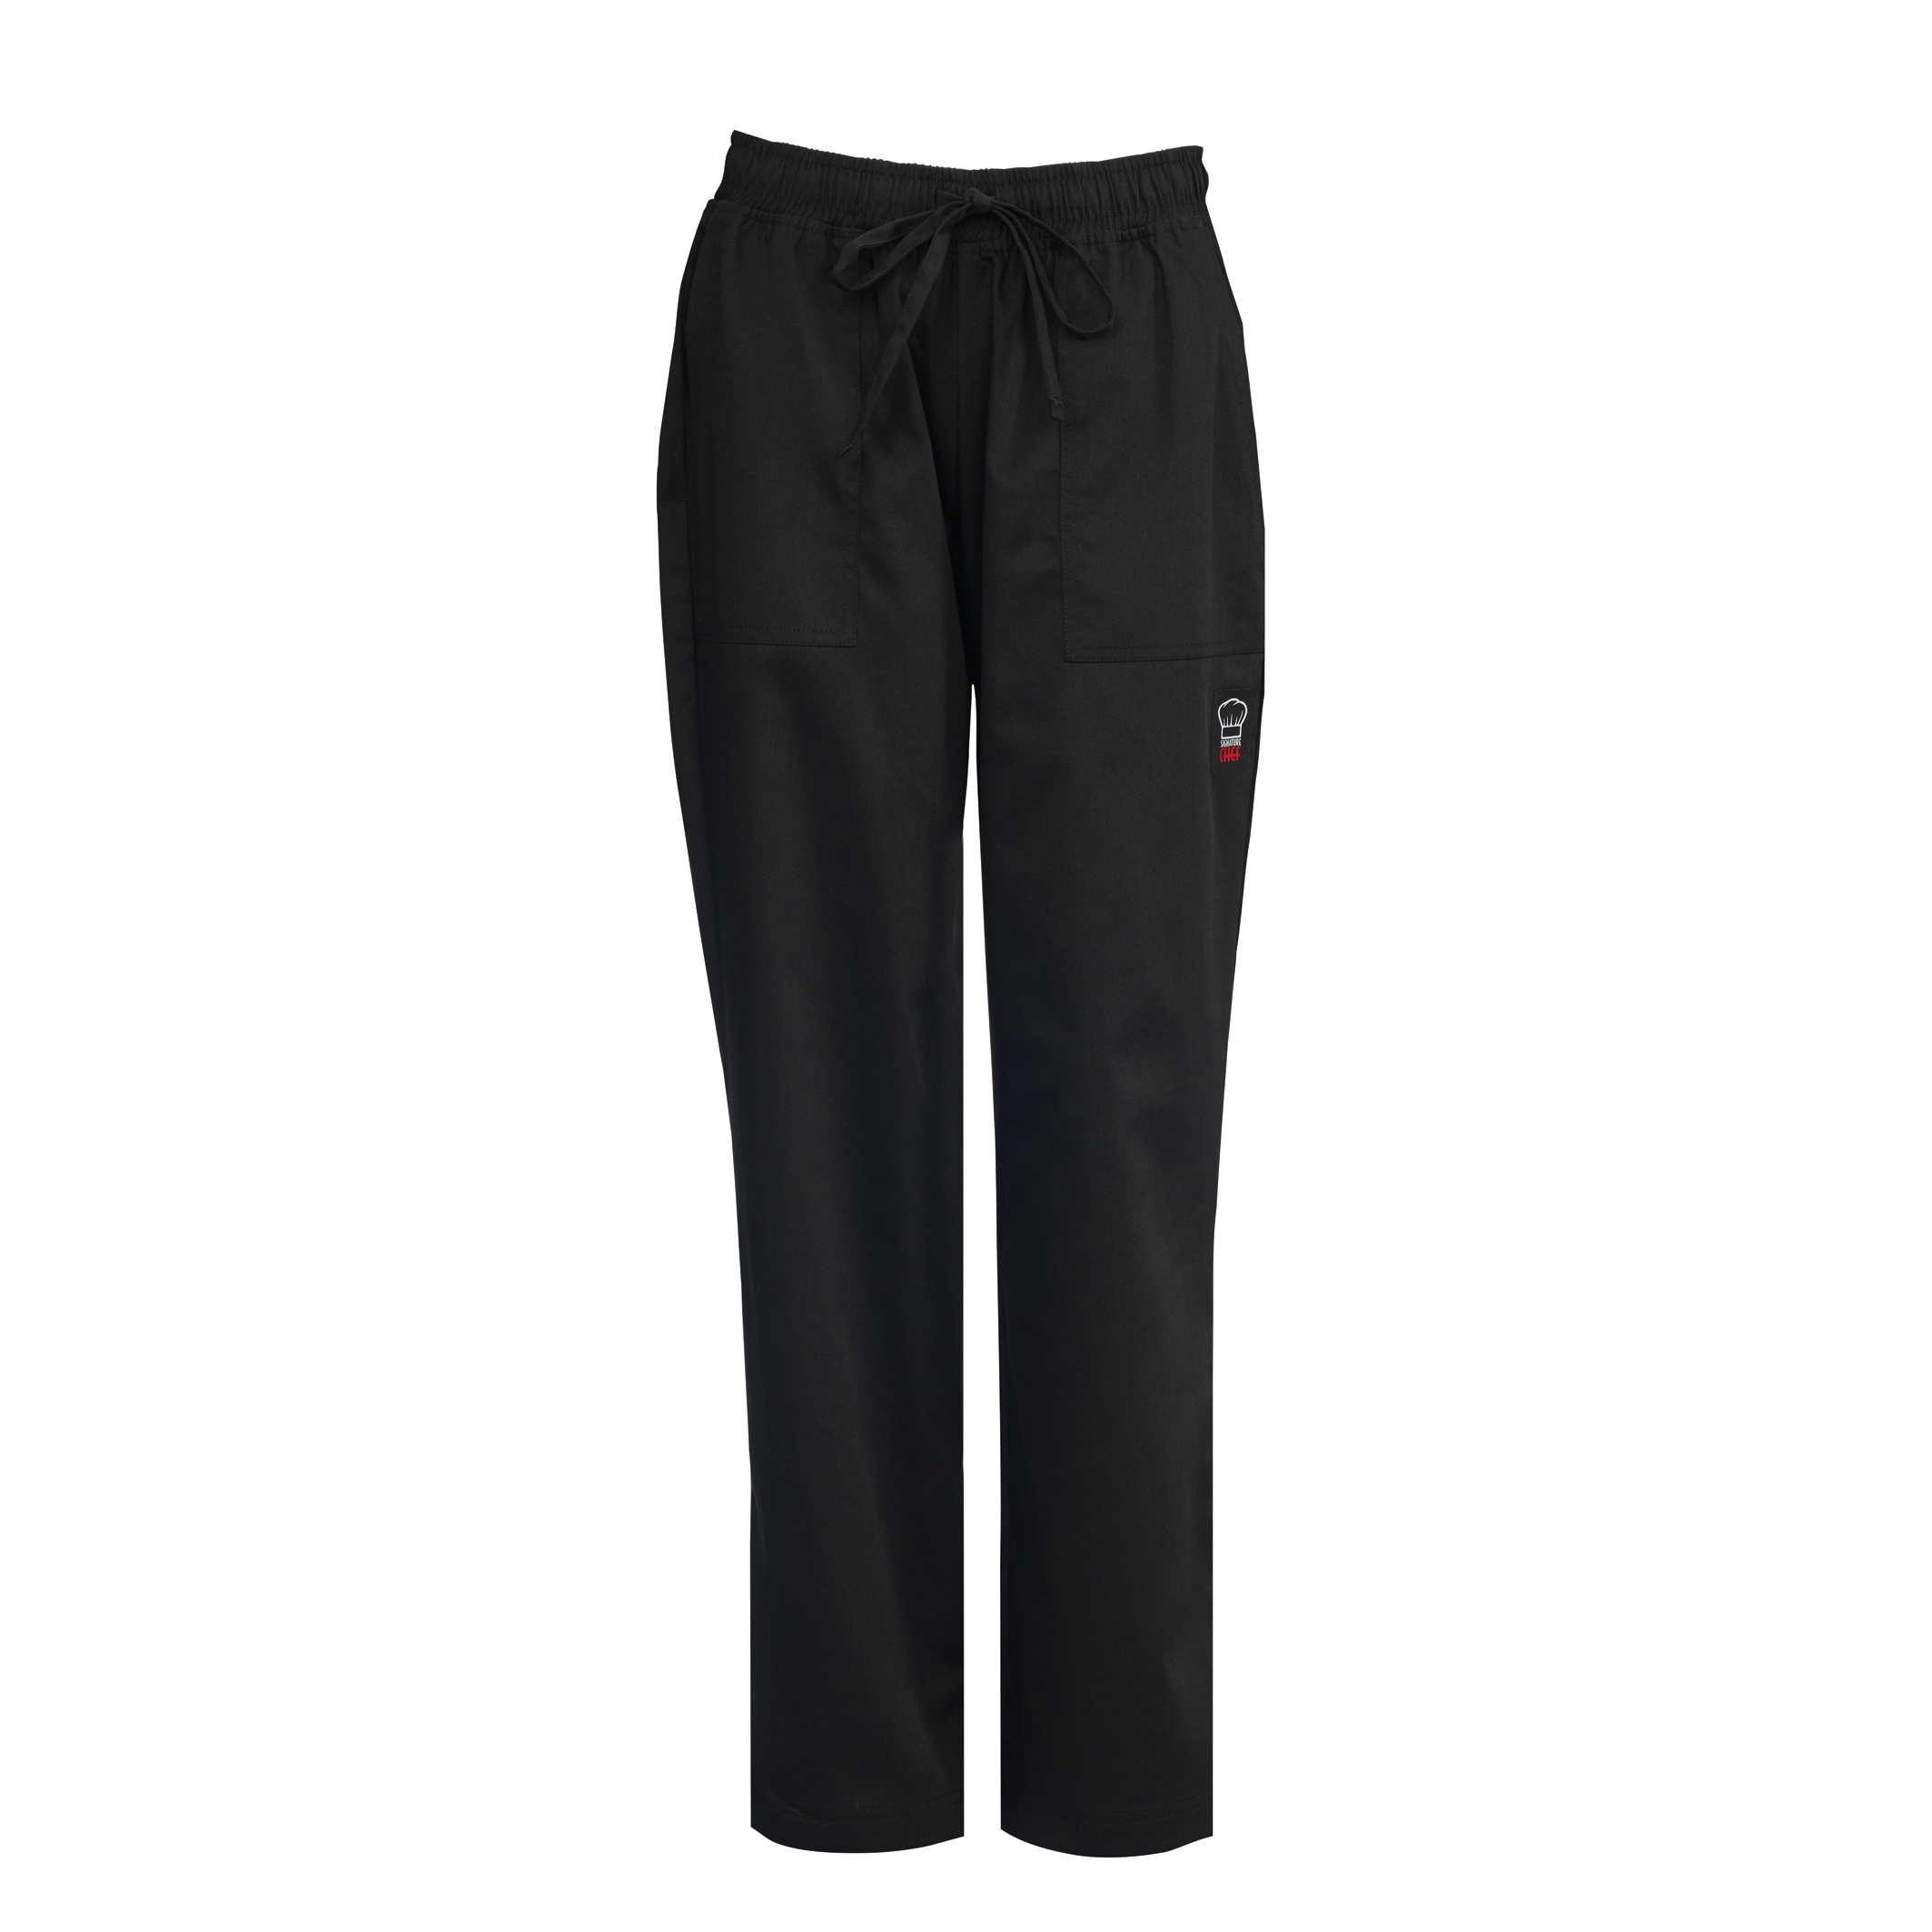 Winco UNF-8KM chef's pants